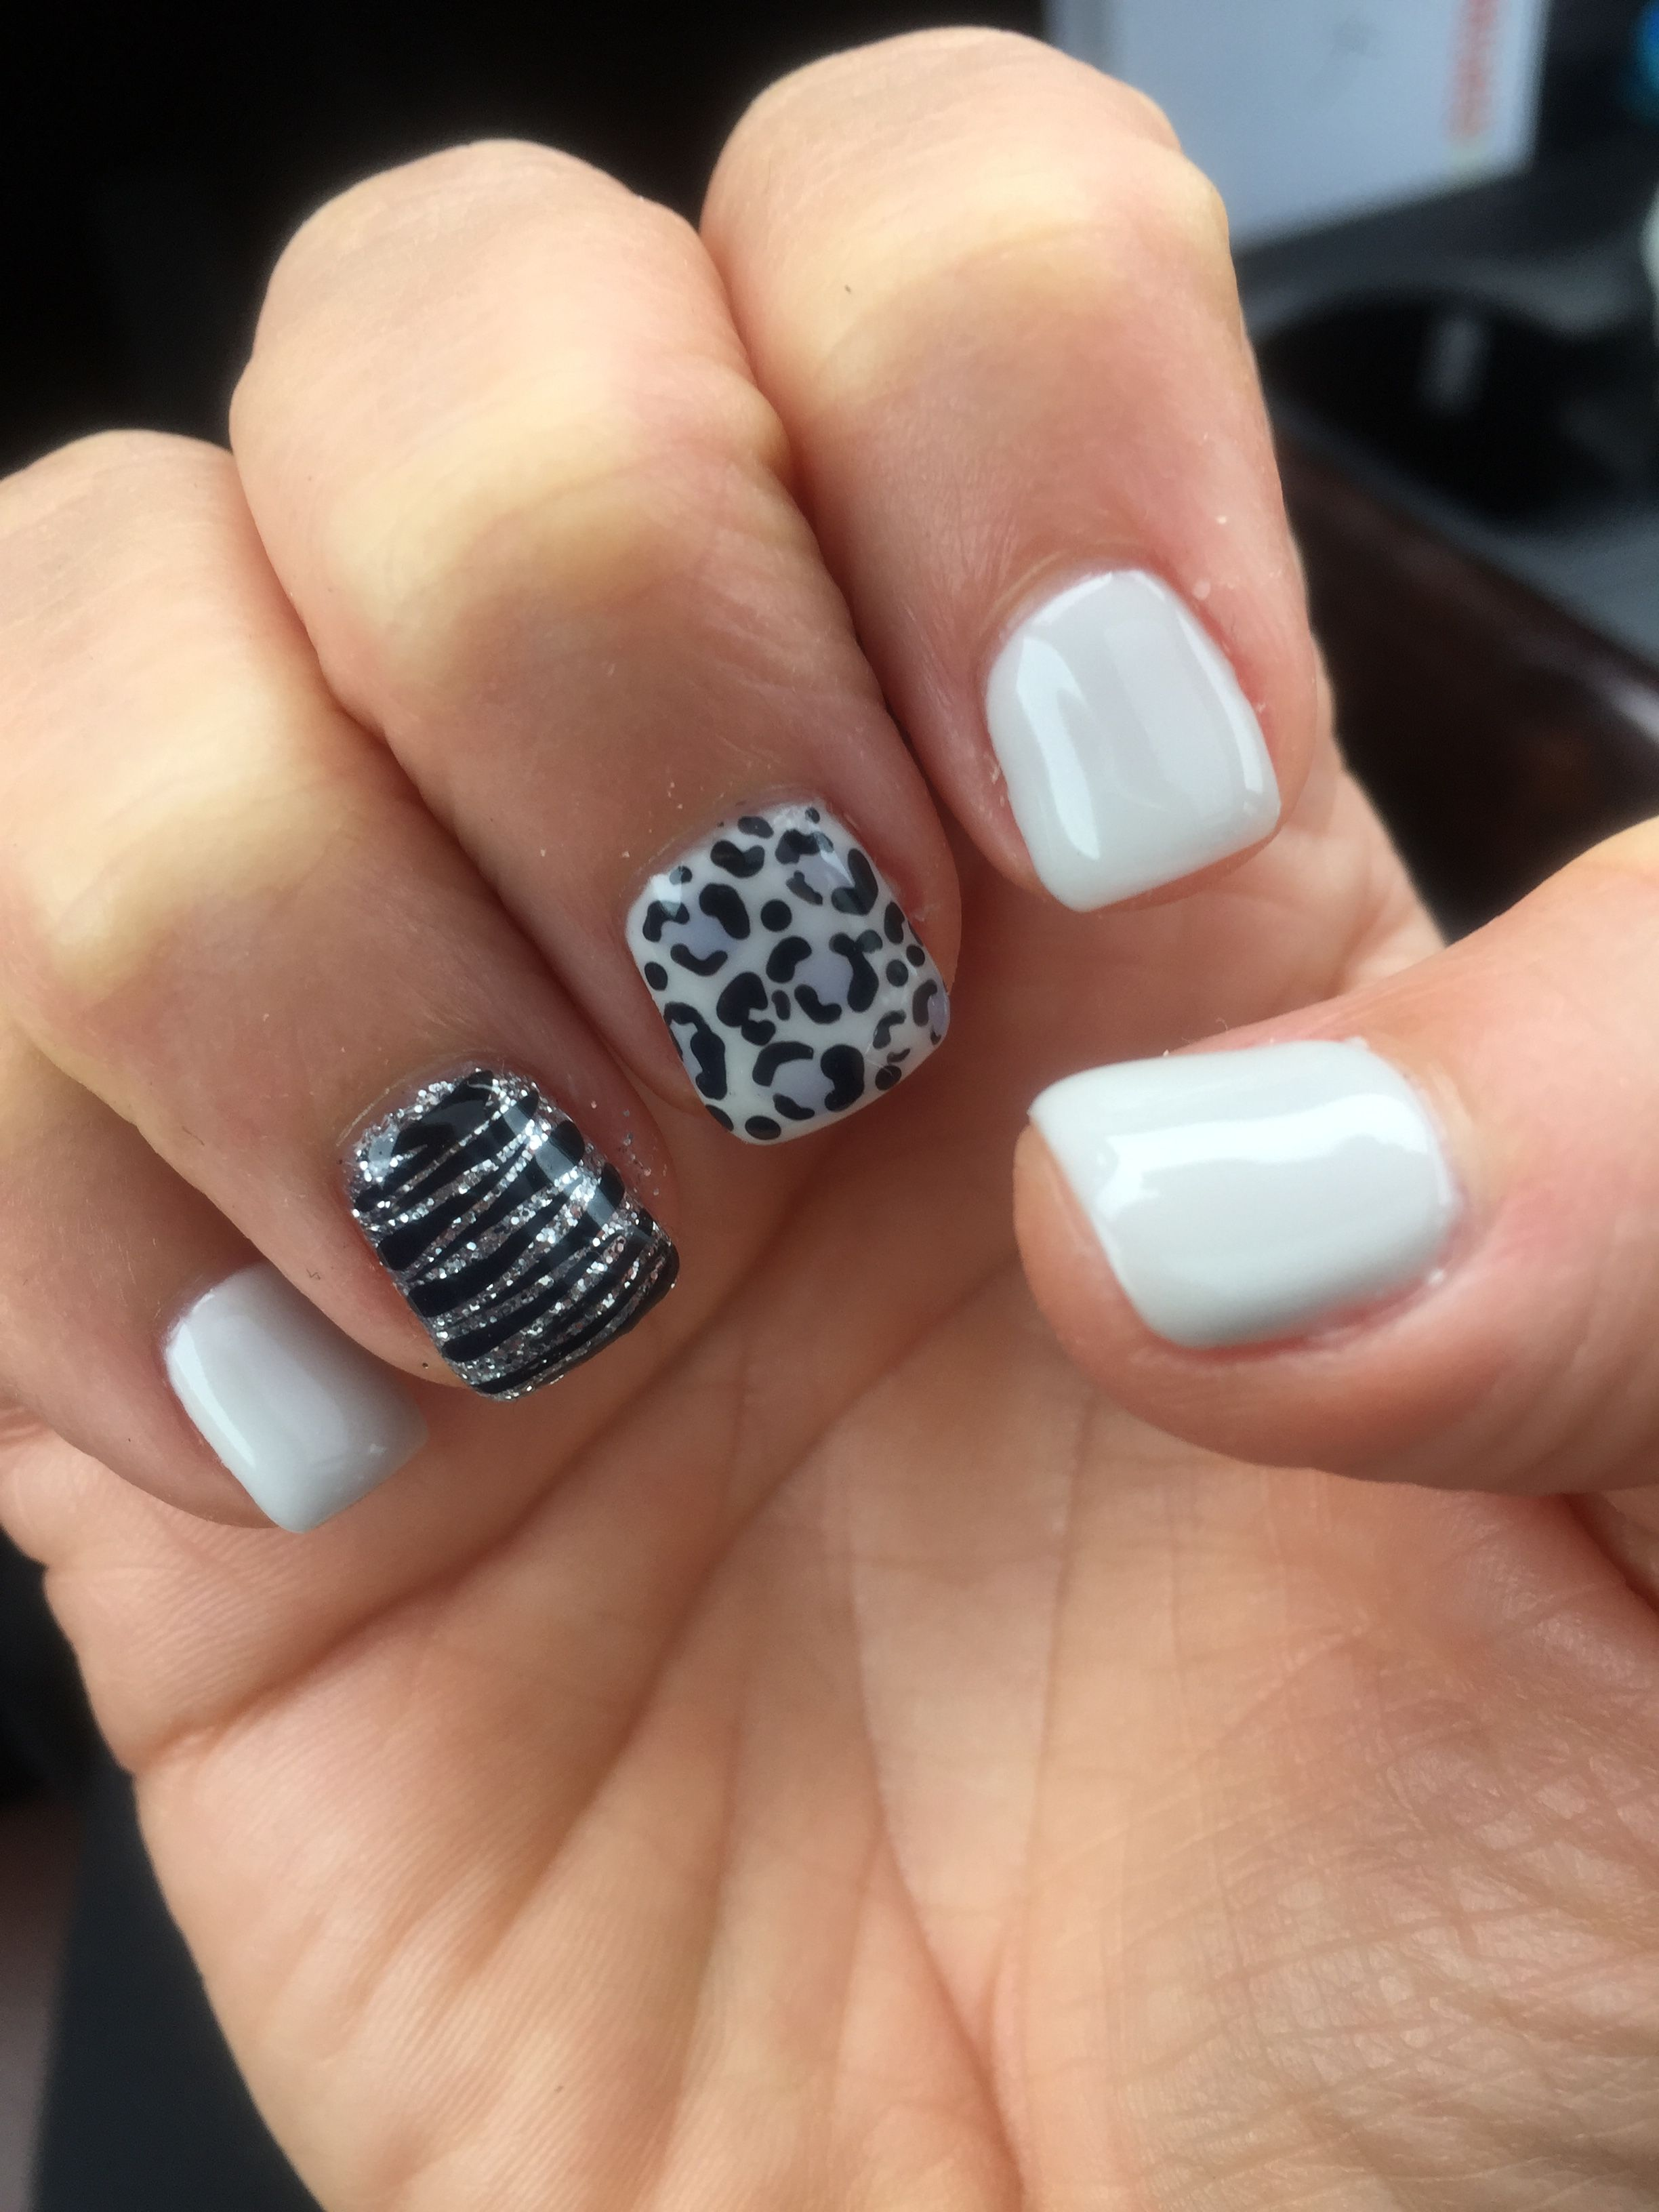 Light gray cheetah zebra animal nail design shellac gel polish light gray cheetah zebra animal nail design shellac gel polish mani prinsesfo Image collections